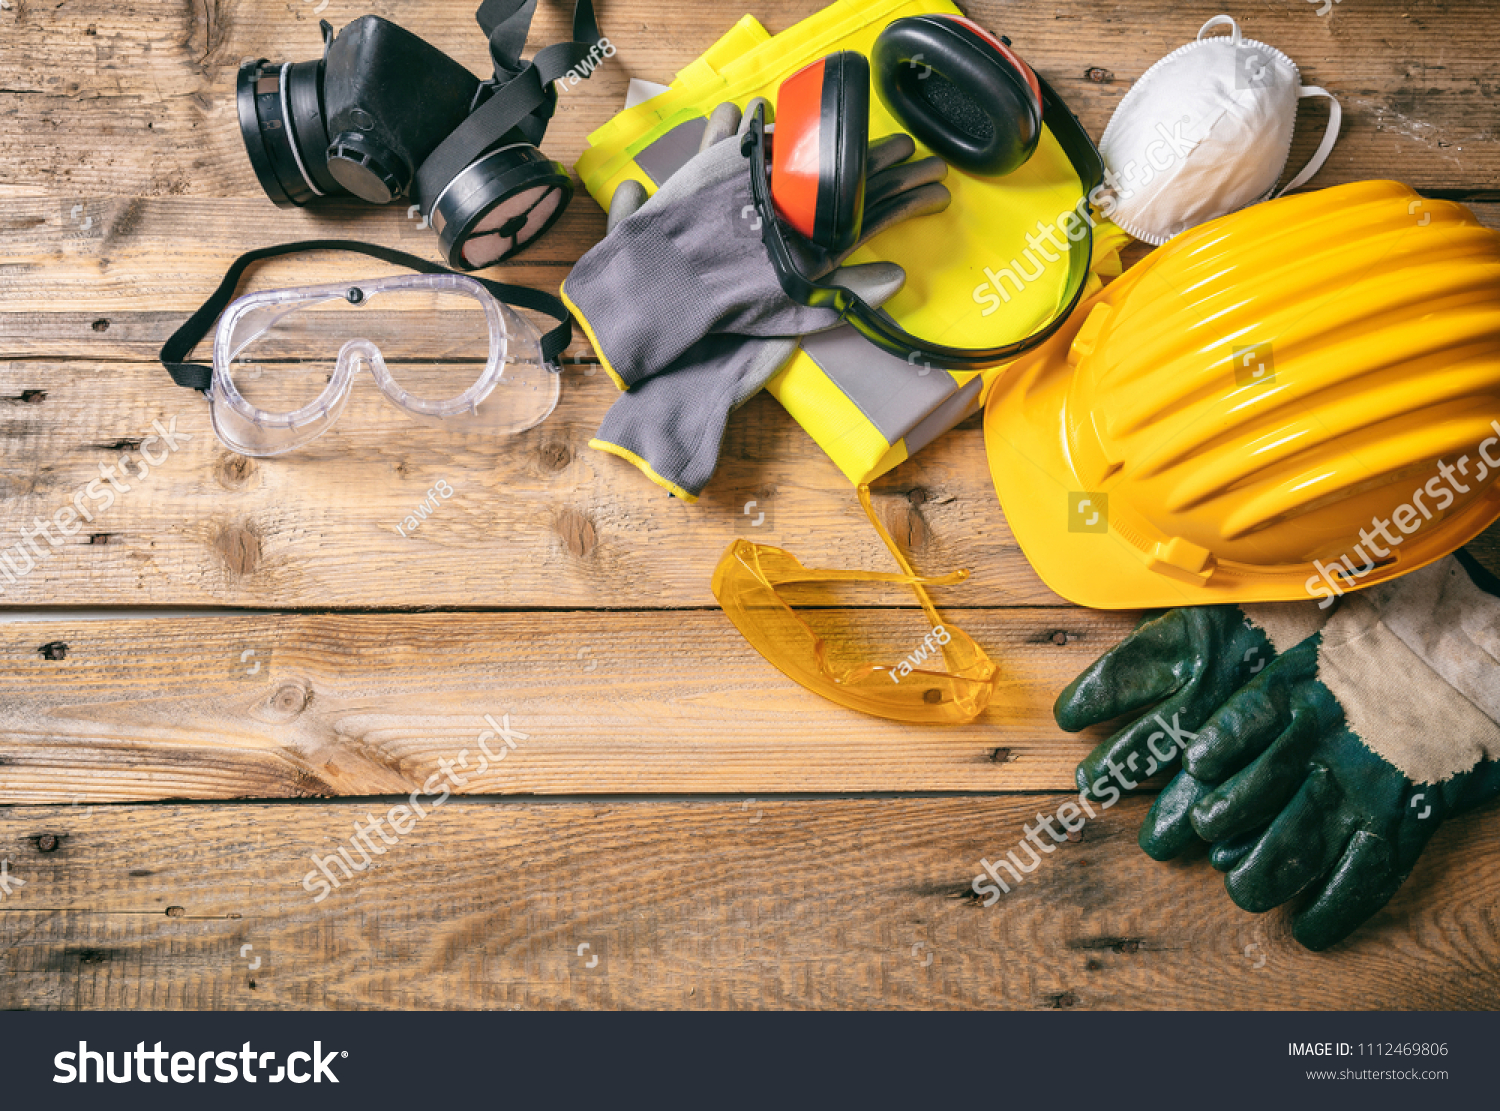 Work safety. Construction site protective equipment on wooden background, flat lay, copy space, top view #1112469806